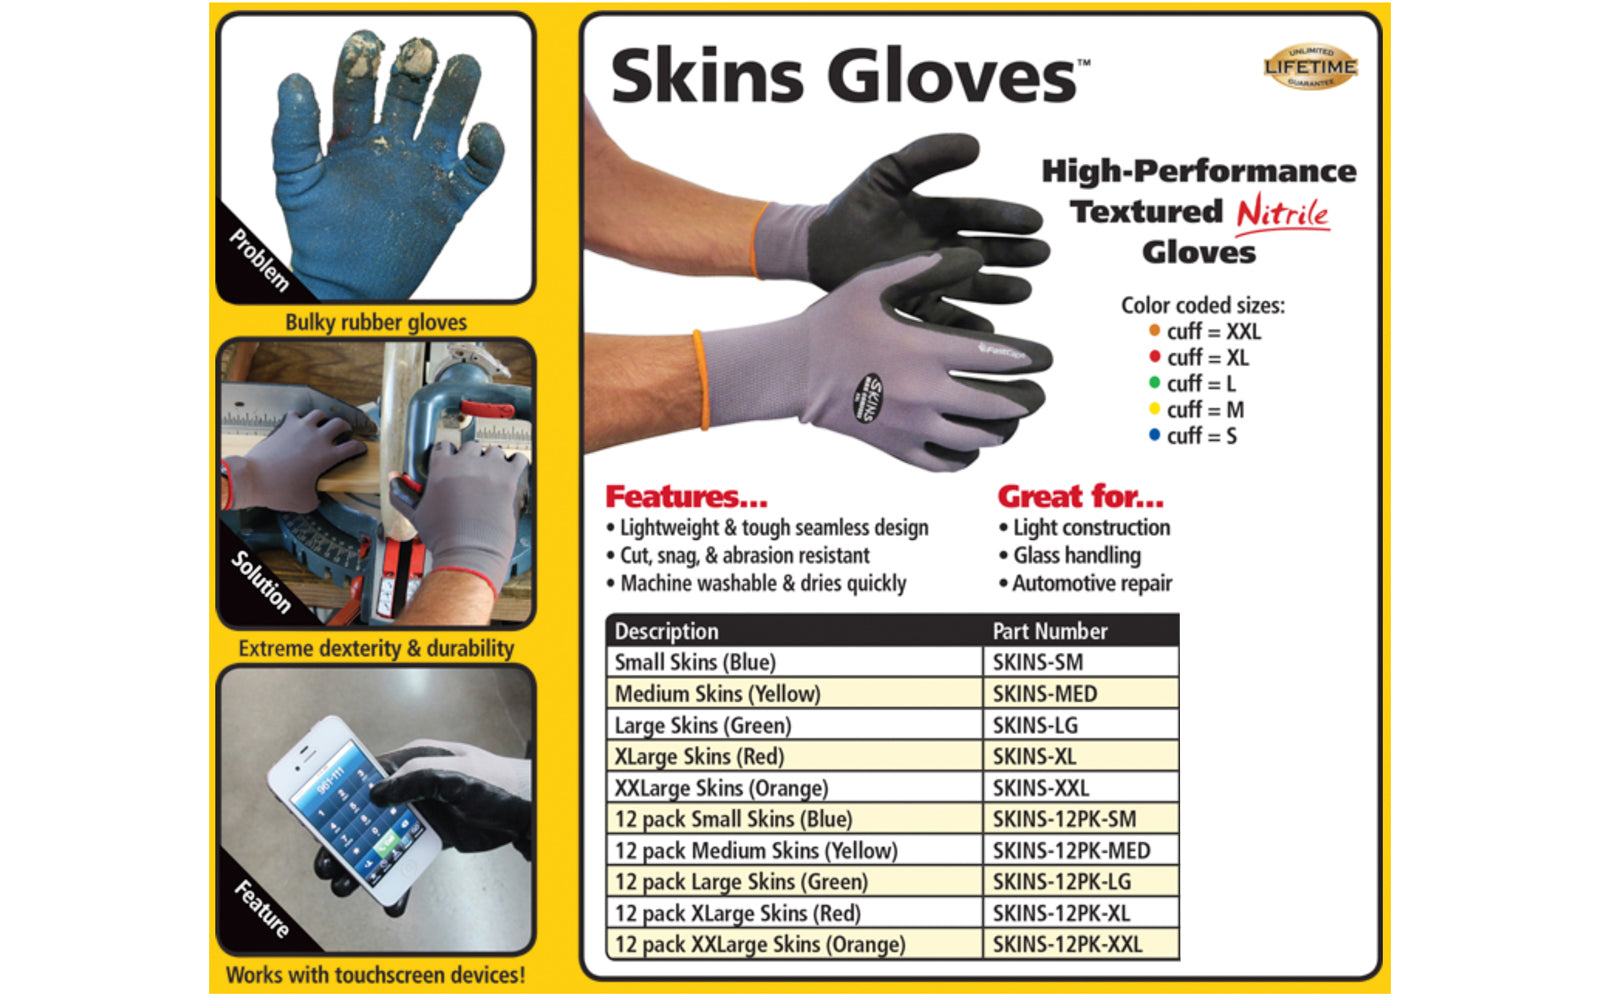 FastCap Skins Work Gloves - Nitrile Coated Palms - Model No. SKINS ~ These gloves have great dexterity & durability. Will work on most touchscreens - Great for light construction, handling wood lumber & melamine, mill work, glass handling, metal parts, automotive repair & parts assembly, & more